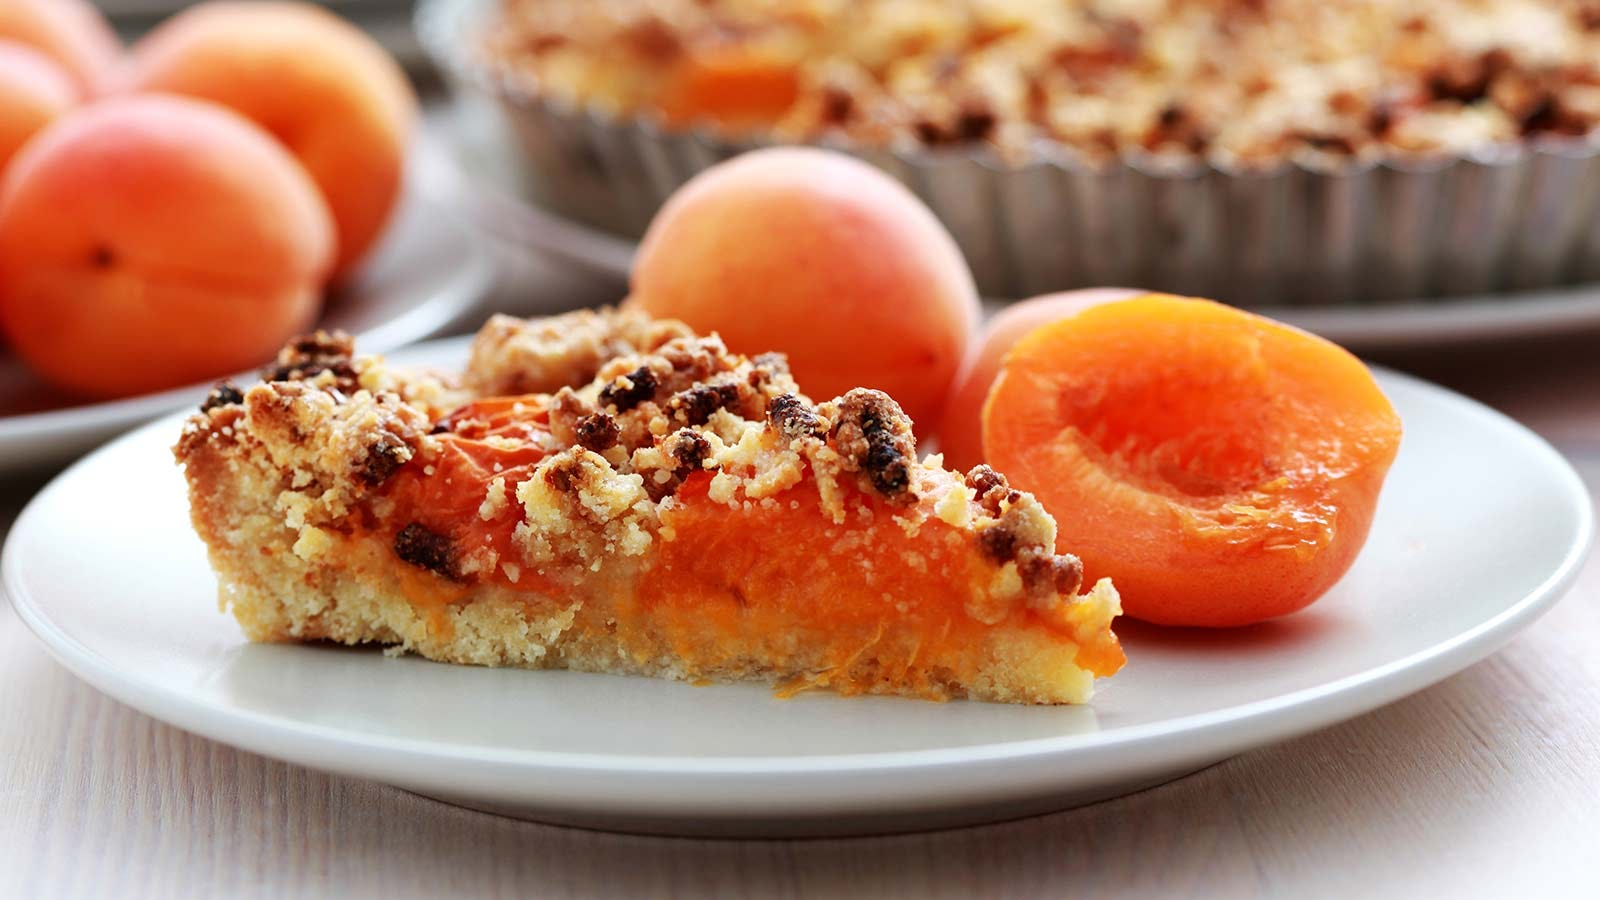 A fresh slice of apricot pie on a plate next to fresh apricots.